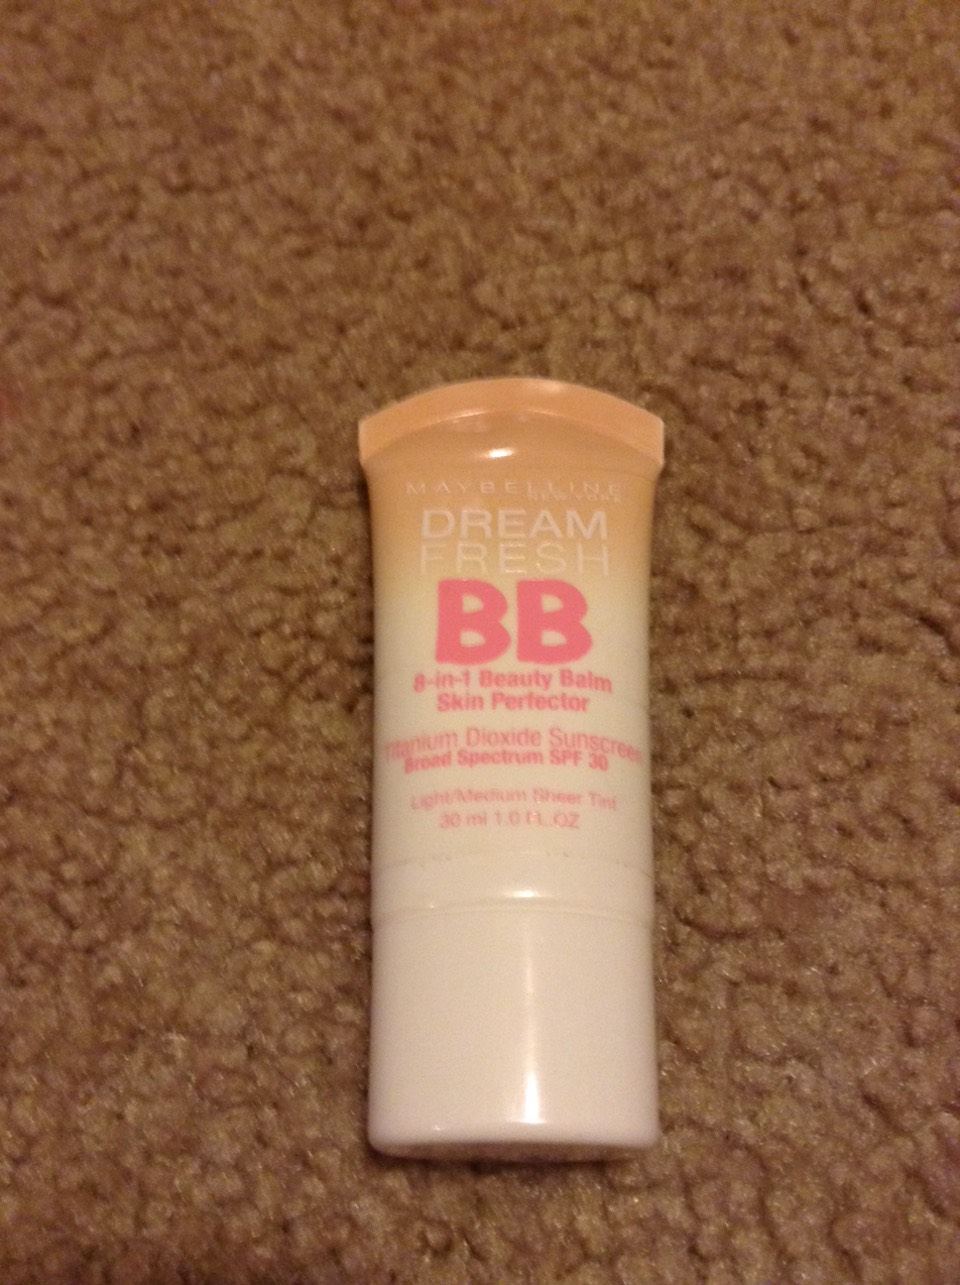 Maybelline has the best BB cream... As long as you get a shade similar to your skin tone it will cover up blemishes and imperfections! Great product!! You can actually get this at dollar general for around $7.50